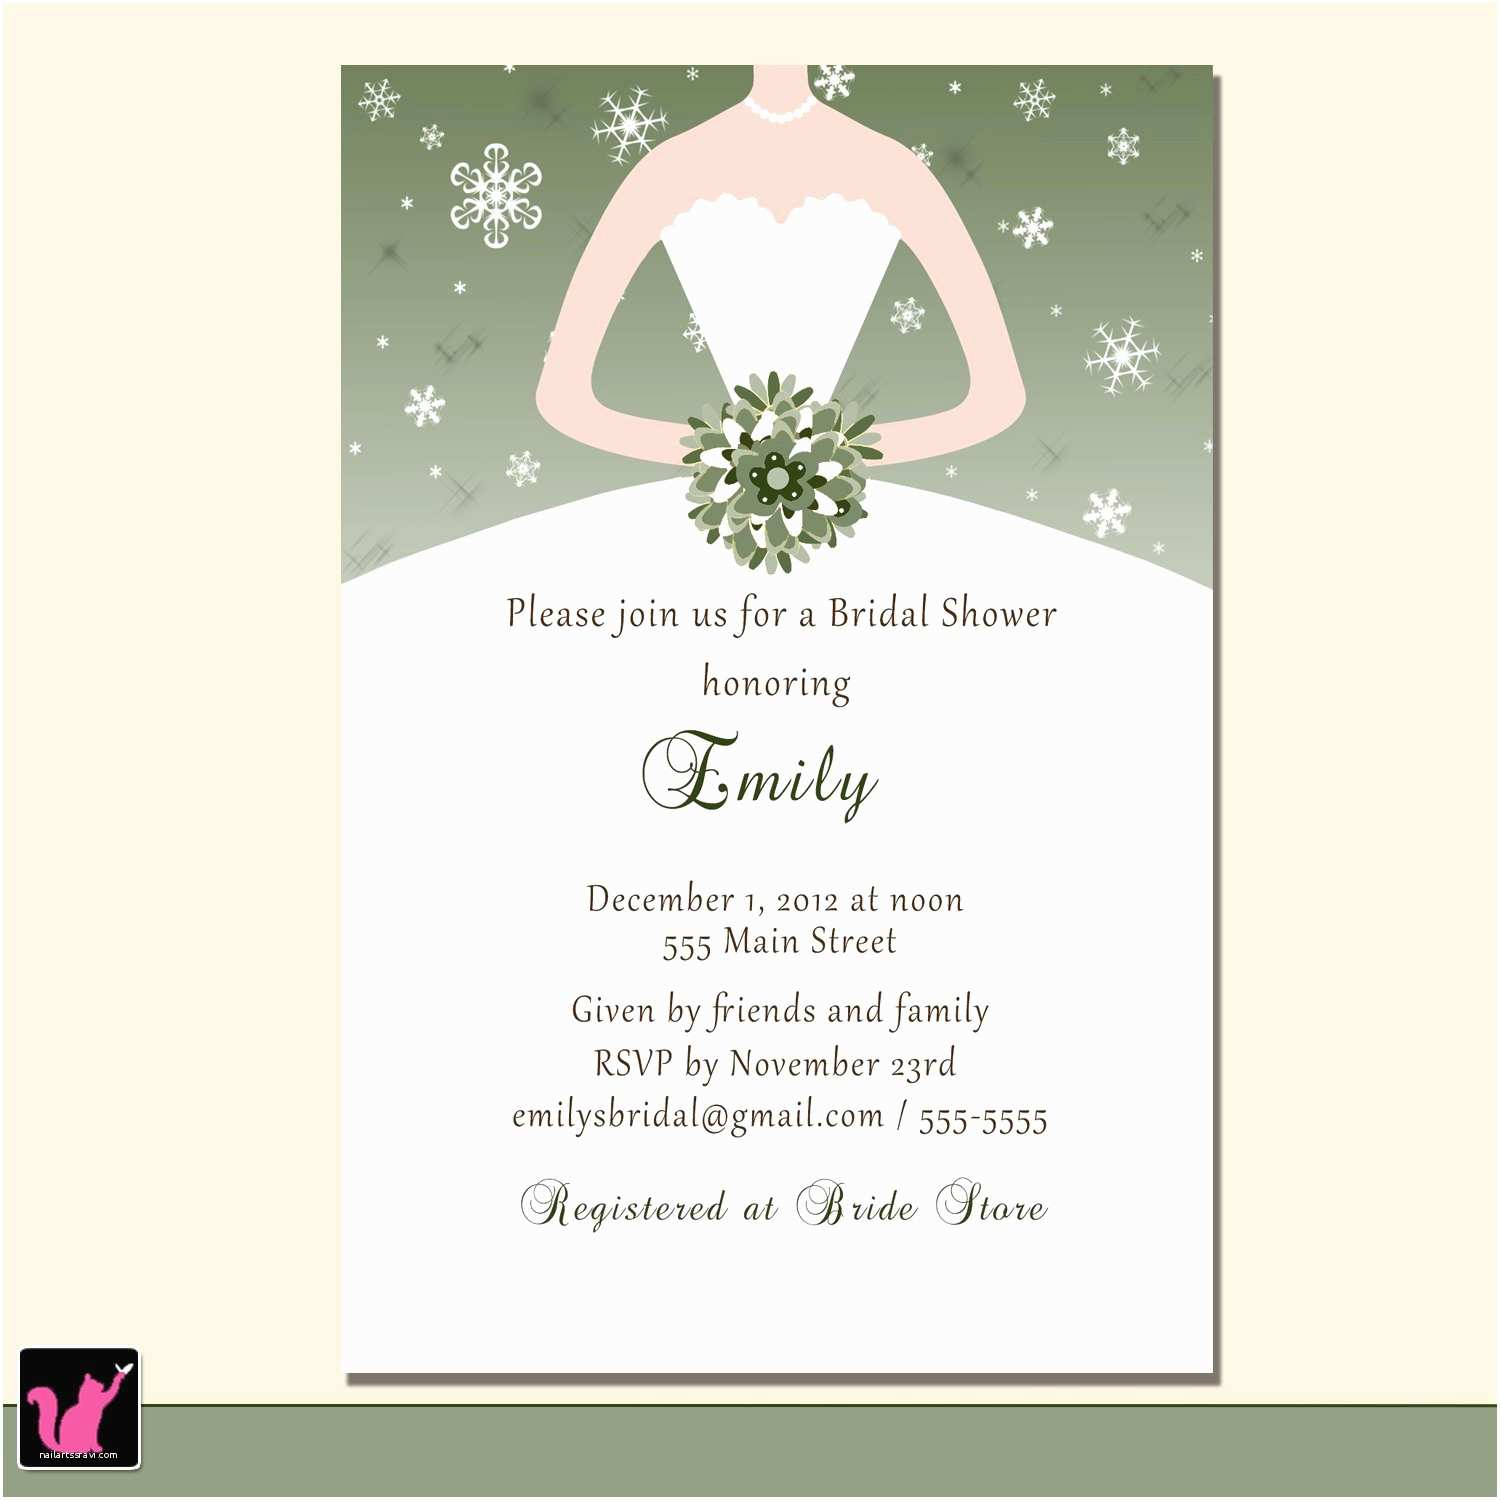 Customizable Wedding Invitations Bridal Shower Invitations Custom Bridal Shower